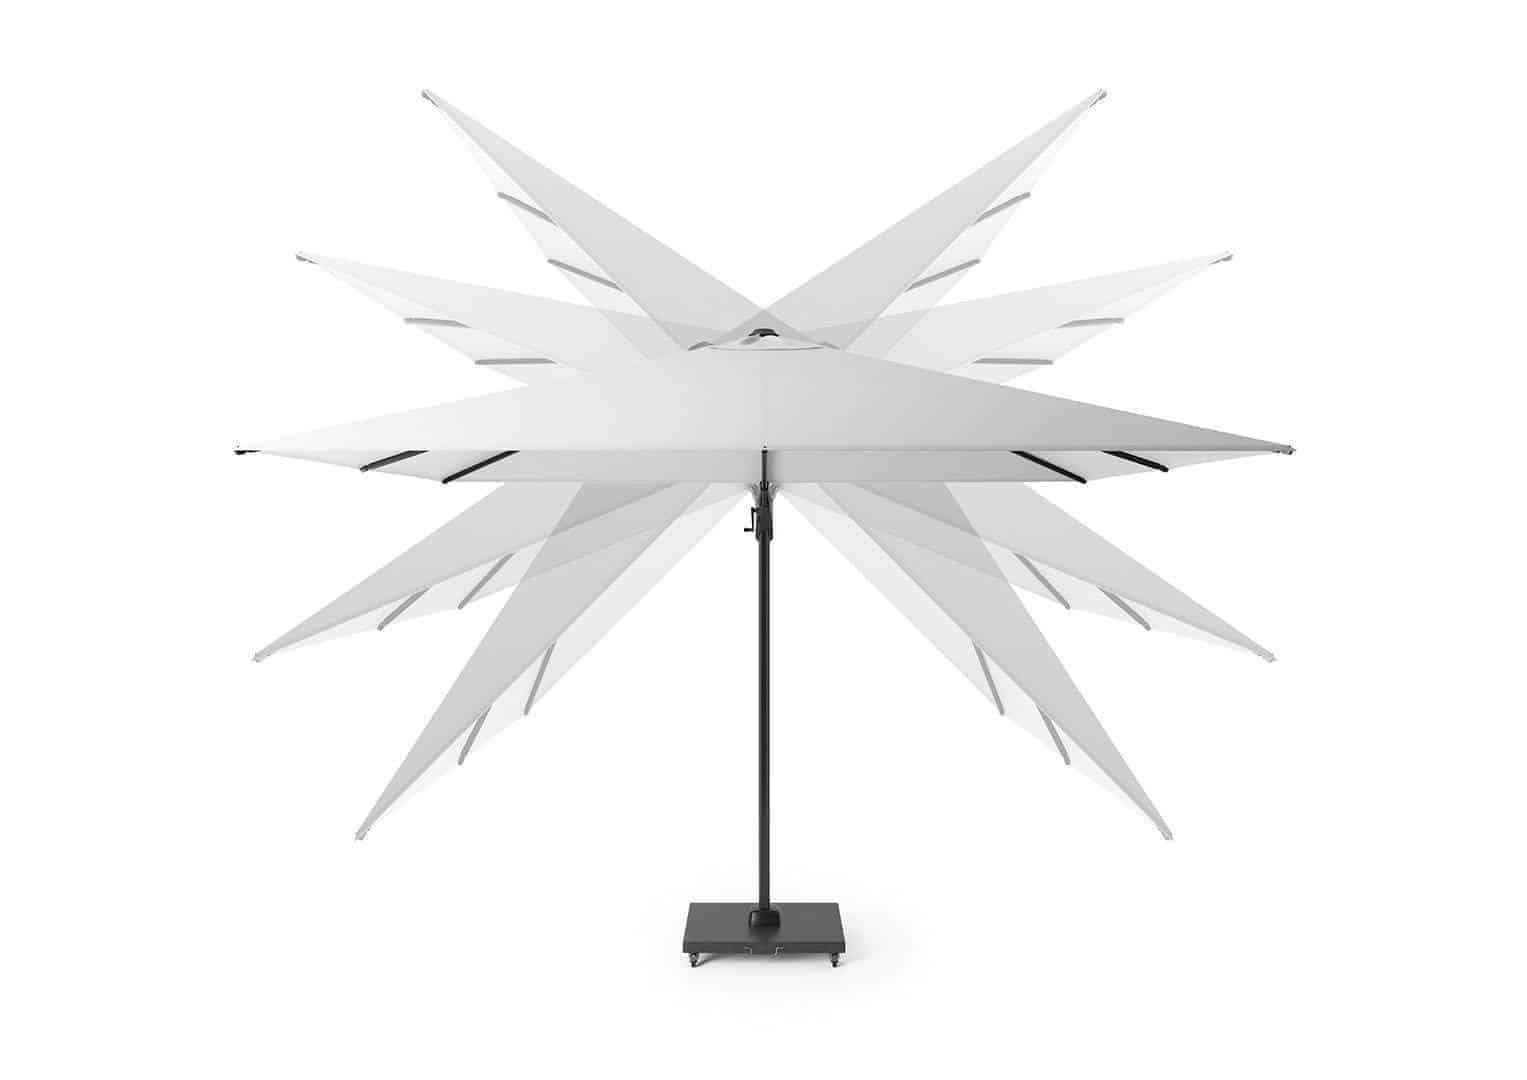 Parasol ogrodowy Challenger T2 GLOW 3 m x 3 m anthracite 7125 237